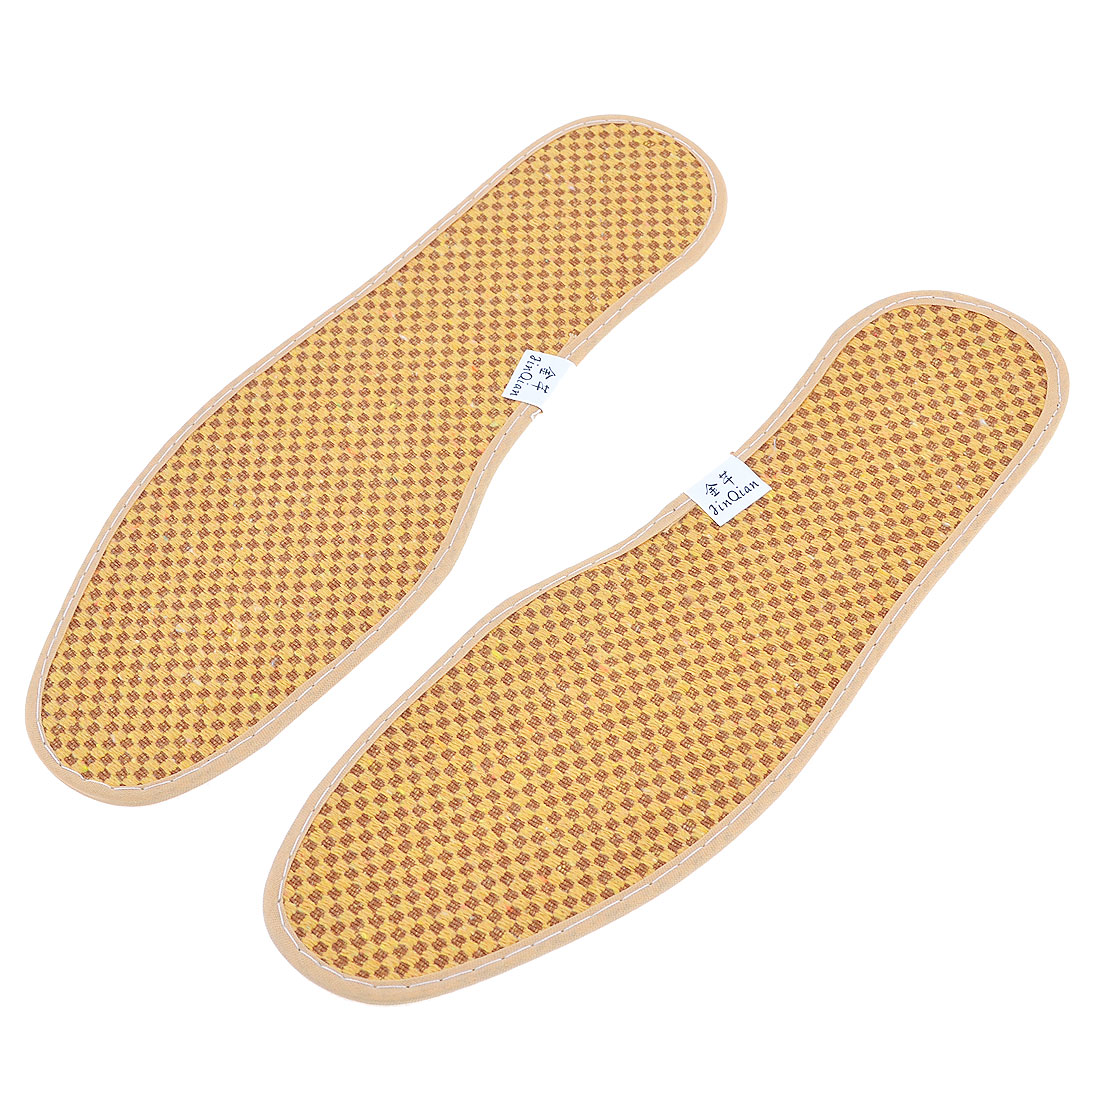 Pair Rhombus Print Textured Nonslip Shoe Pads Insoles UK Size 6.5 Yellow Brown